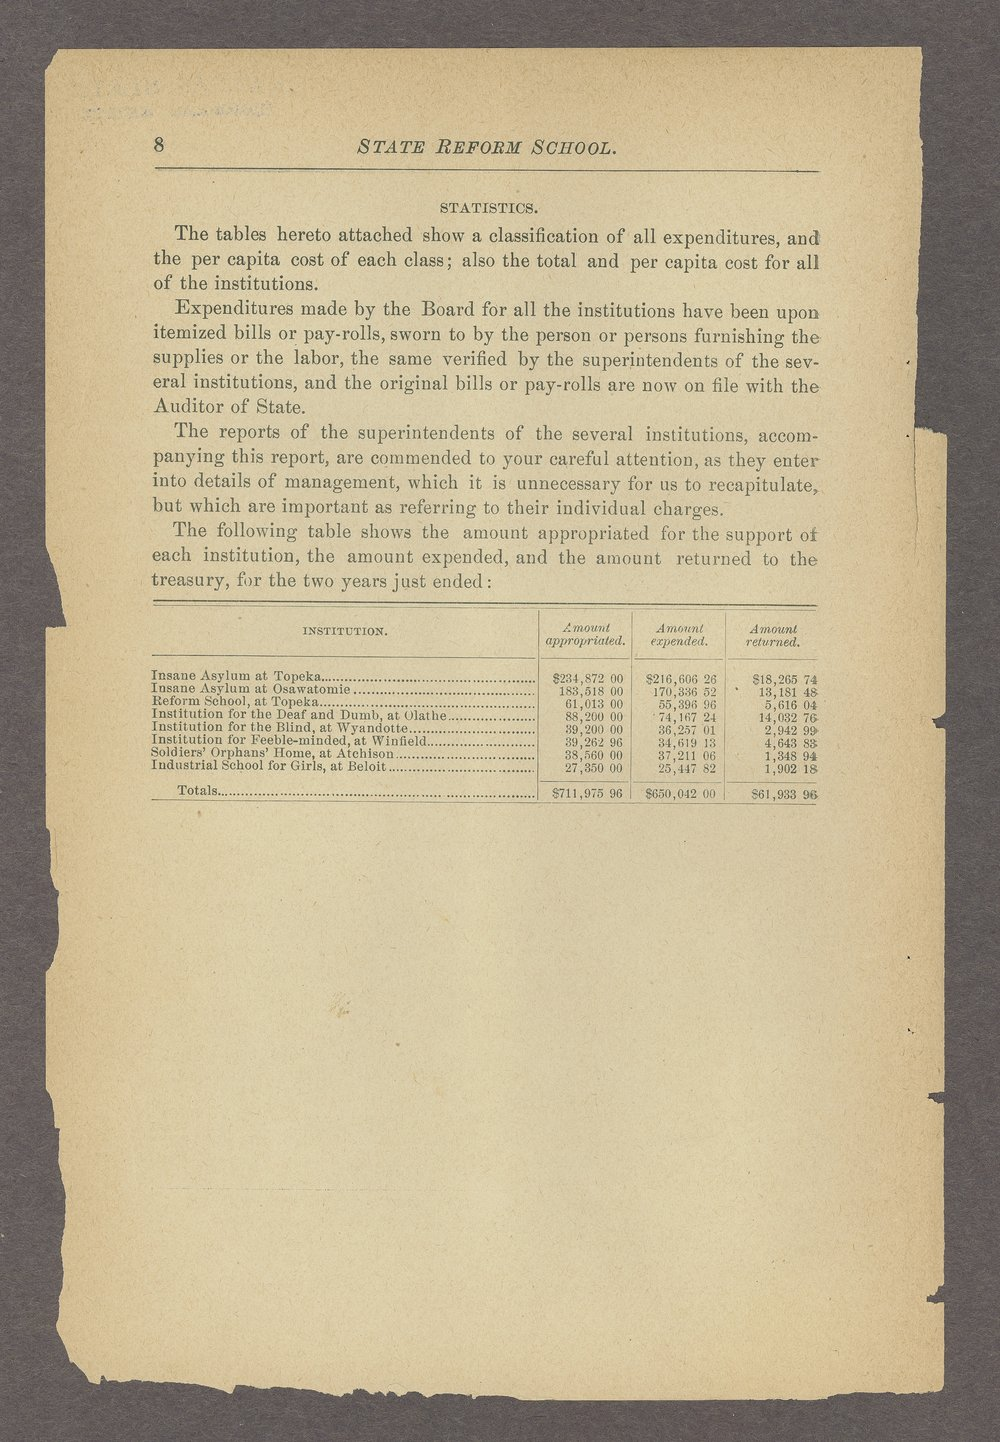 Biennial report of the State Reform School, 1892 - 8